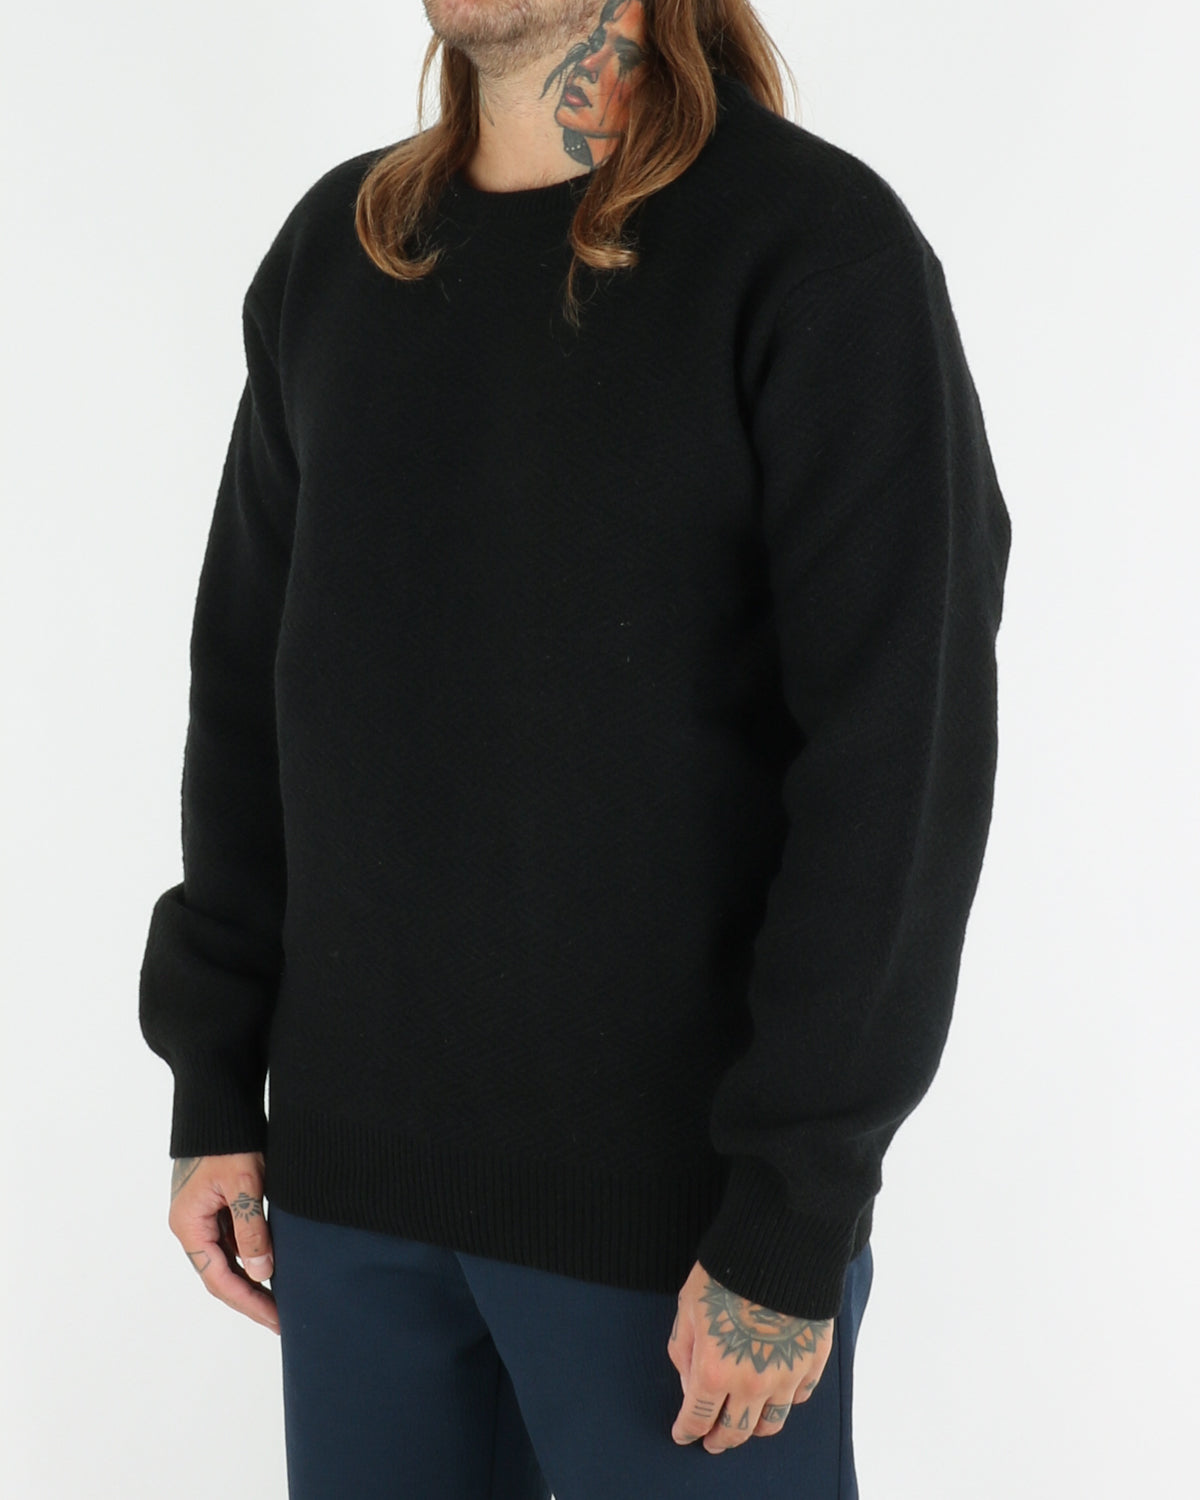 soulland_cassidy herringbone sweater_black_view_2_3